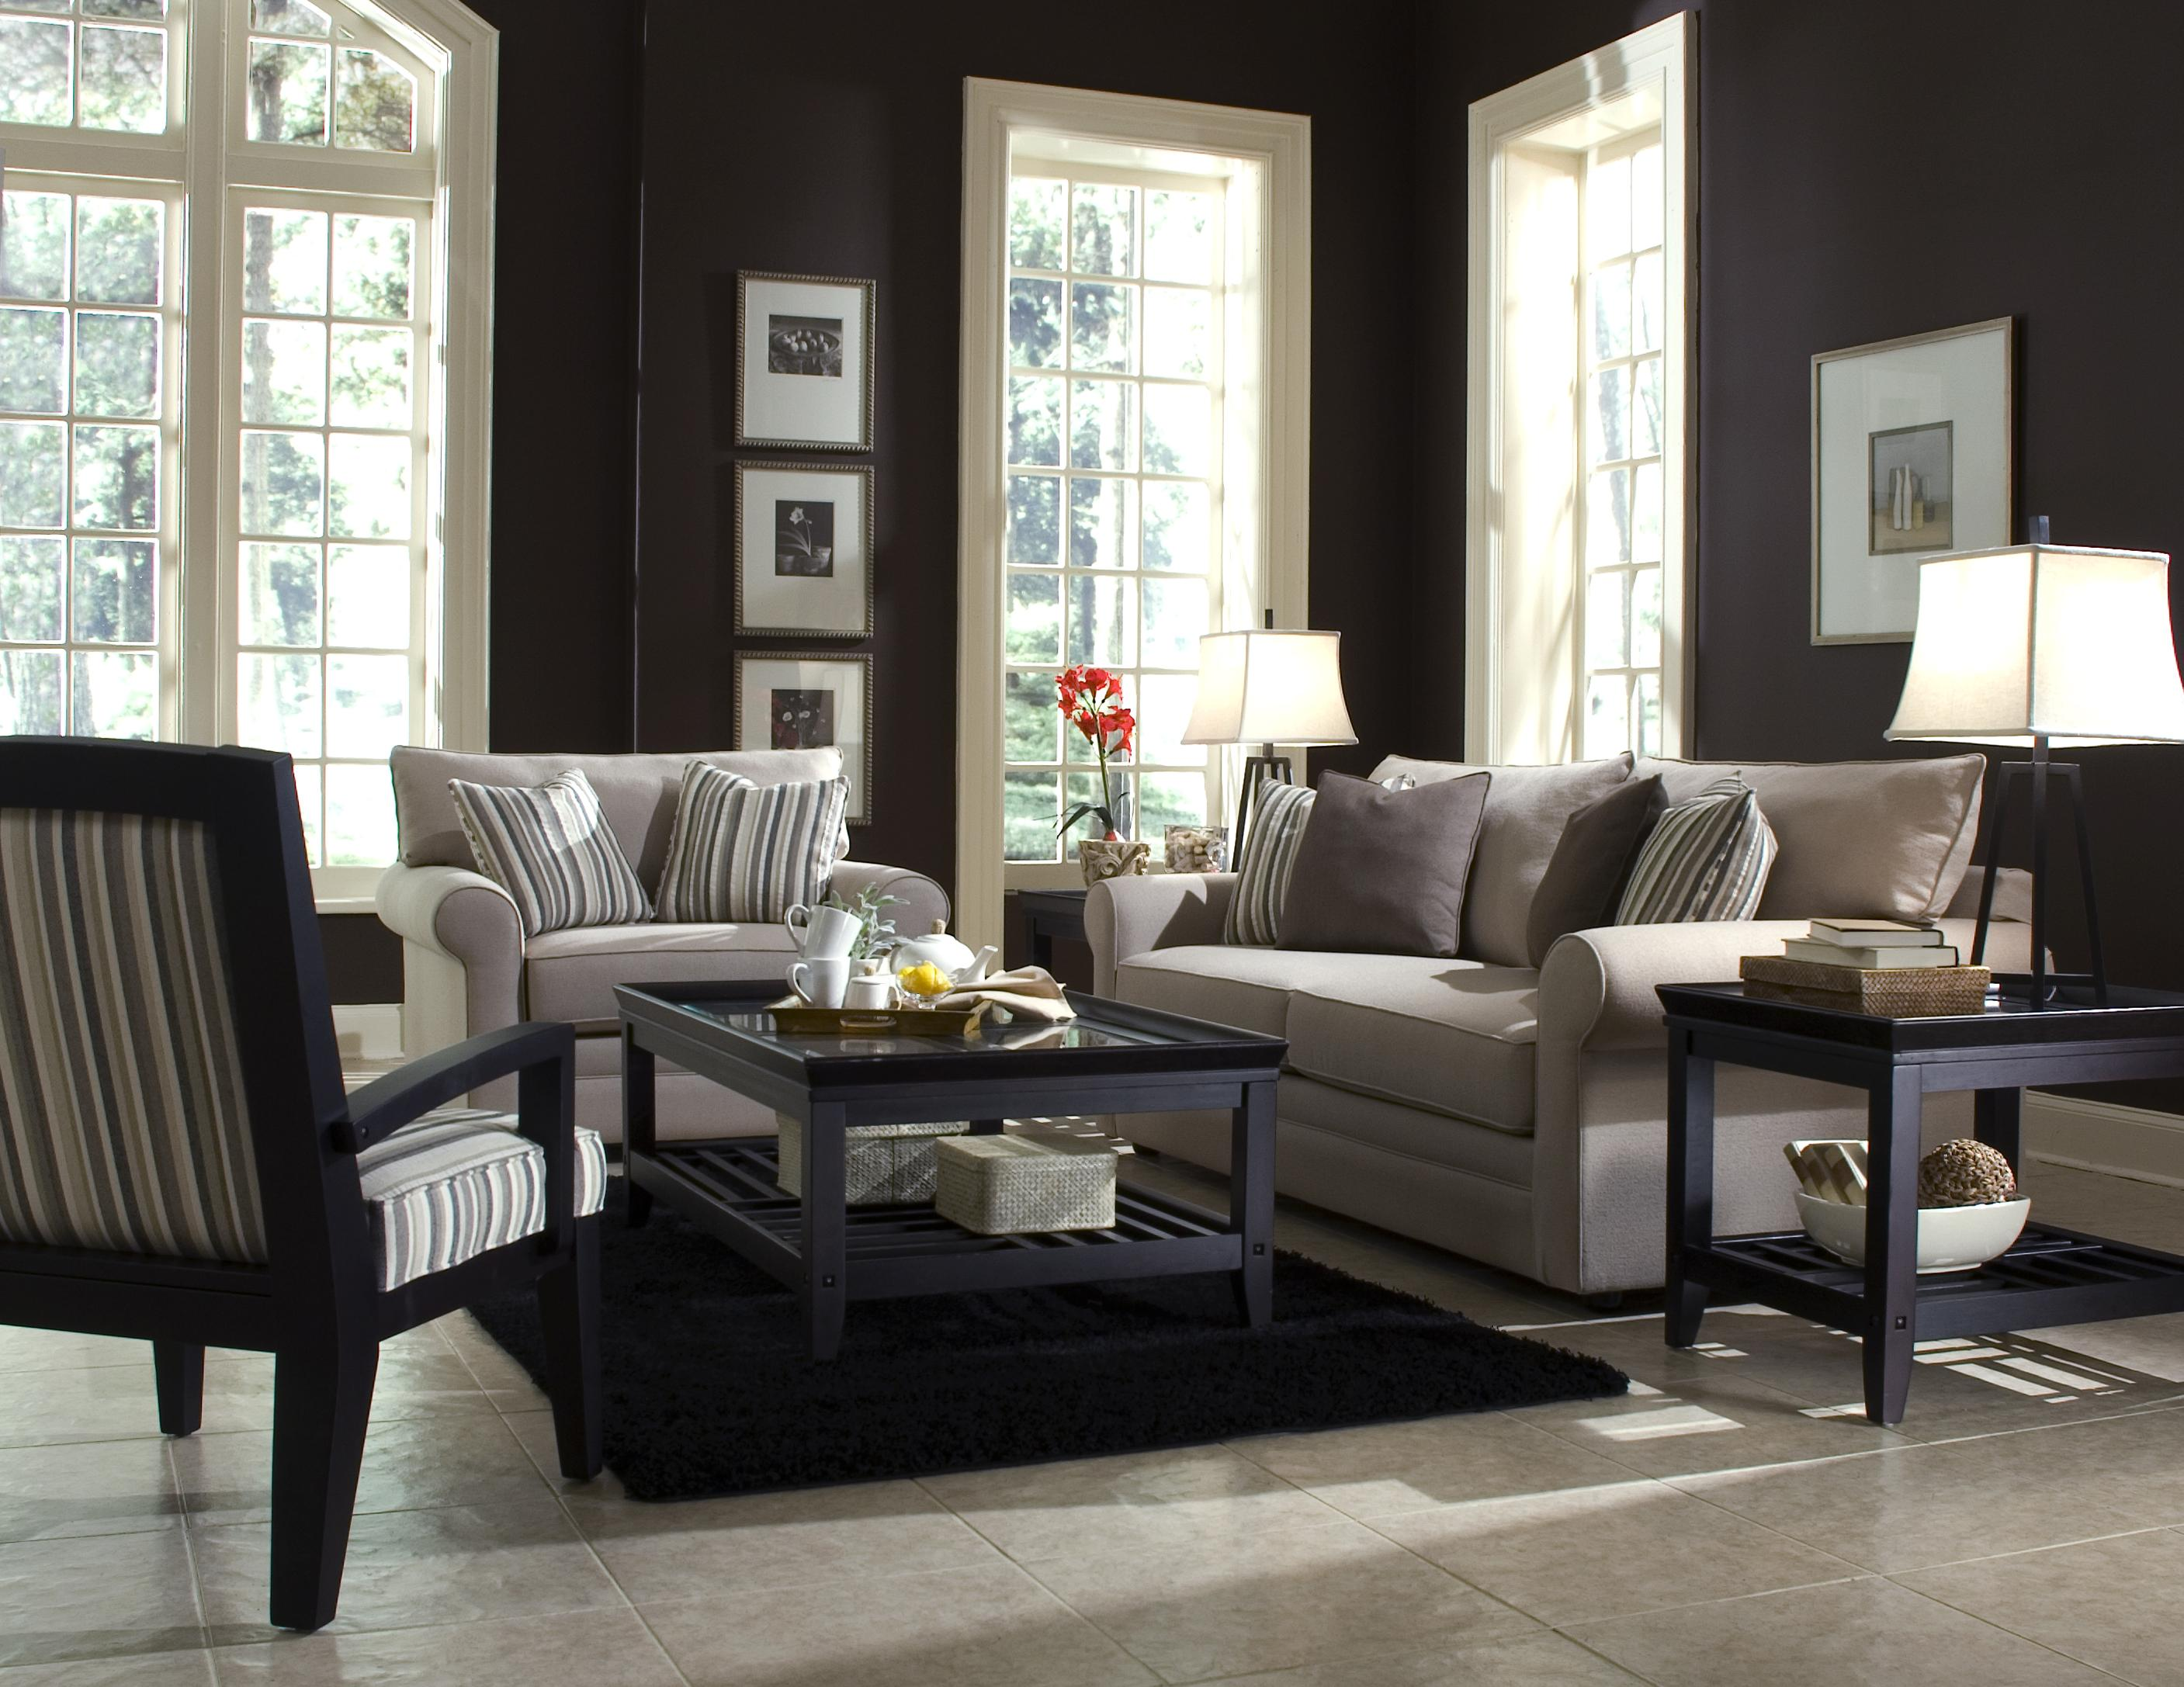 Comfy Stationary Living Room Group by Klaussner at Northeast Factory Direct